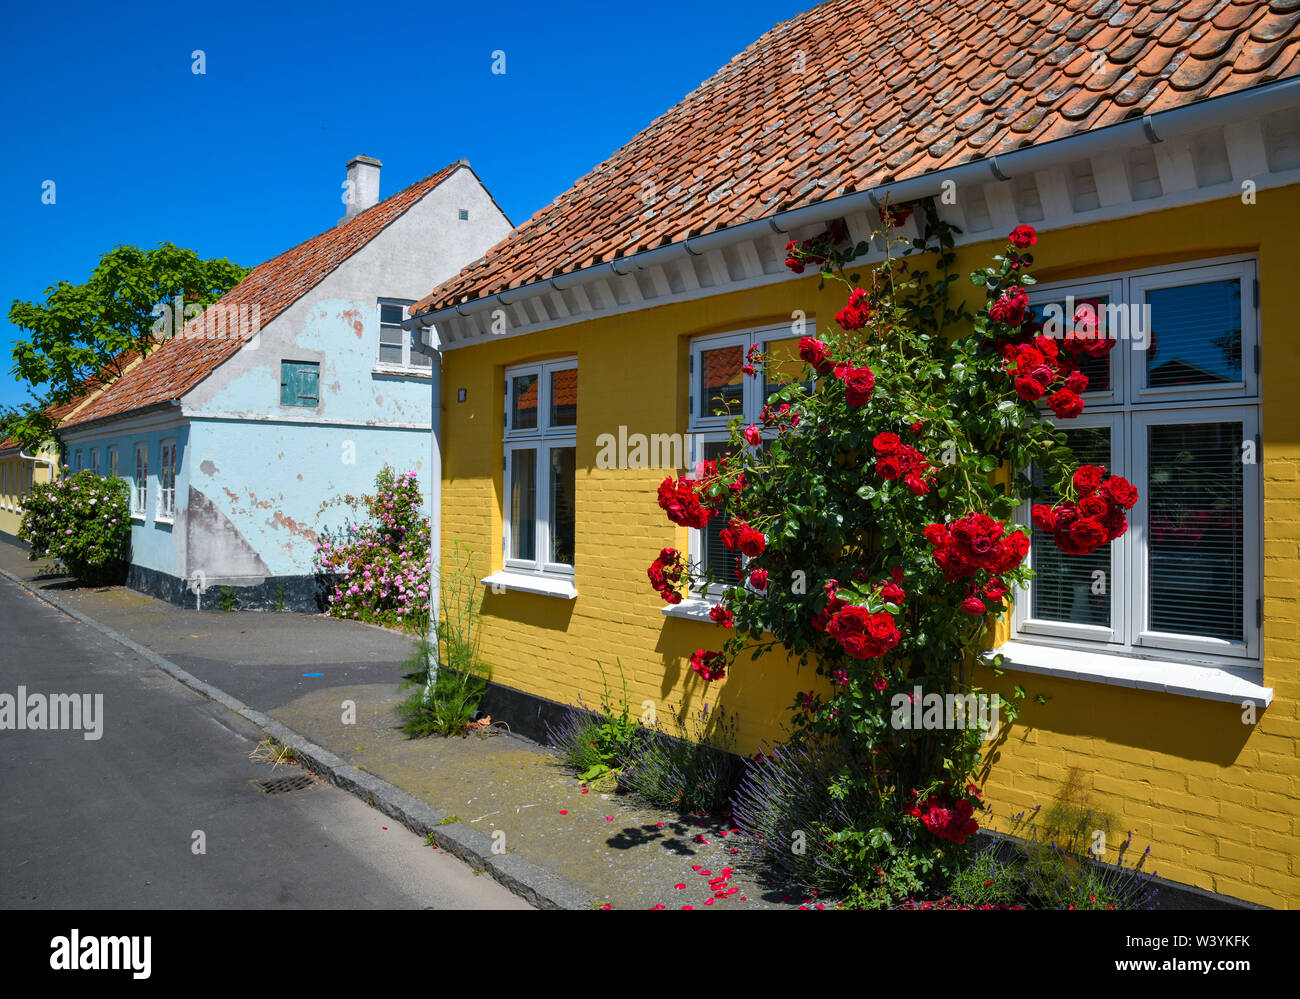 Svaneke, Denmark. 28th June, 2019. Houses in Svaneke, a small town on the north-eastern edge of the Danish Baltic Sea island of Bornholm. Svaneke is the best preserved old town in Bornholm. The island Bornholm is, together with the offshore archipelago Ertholmene, Denmark's most eastern island. Thanks to its location, the island of Bornholm counts many hours of sunshine. Credit: Patrick Pleul/dpa-Zentralbild/ZB/dpa/Alamy Live News - Stock Image